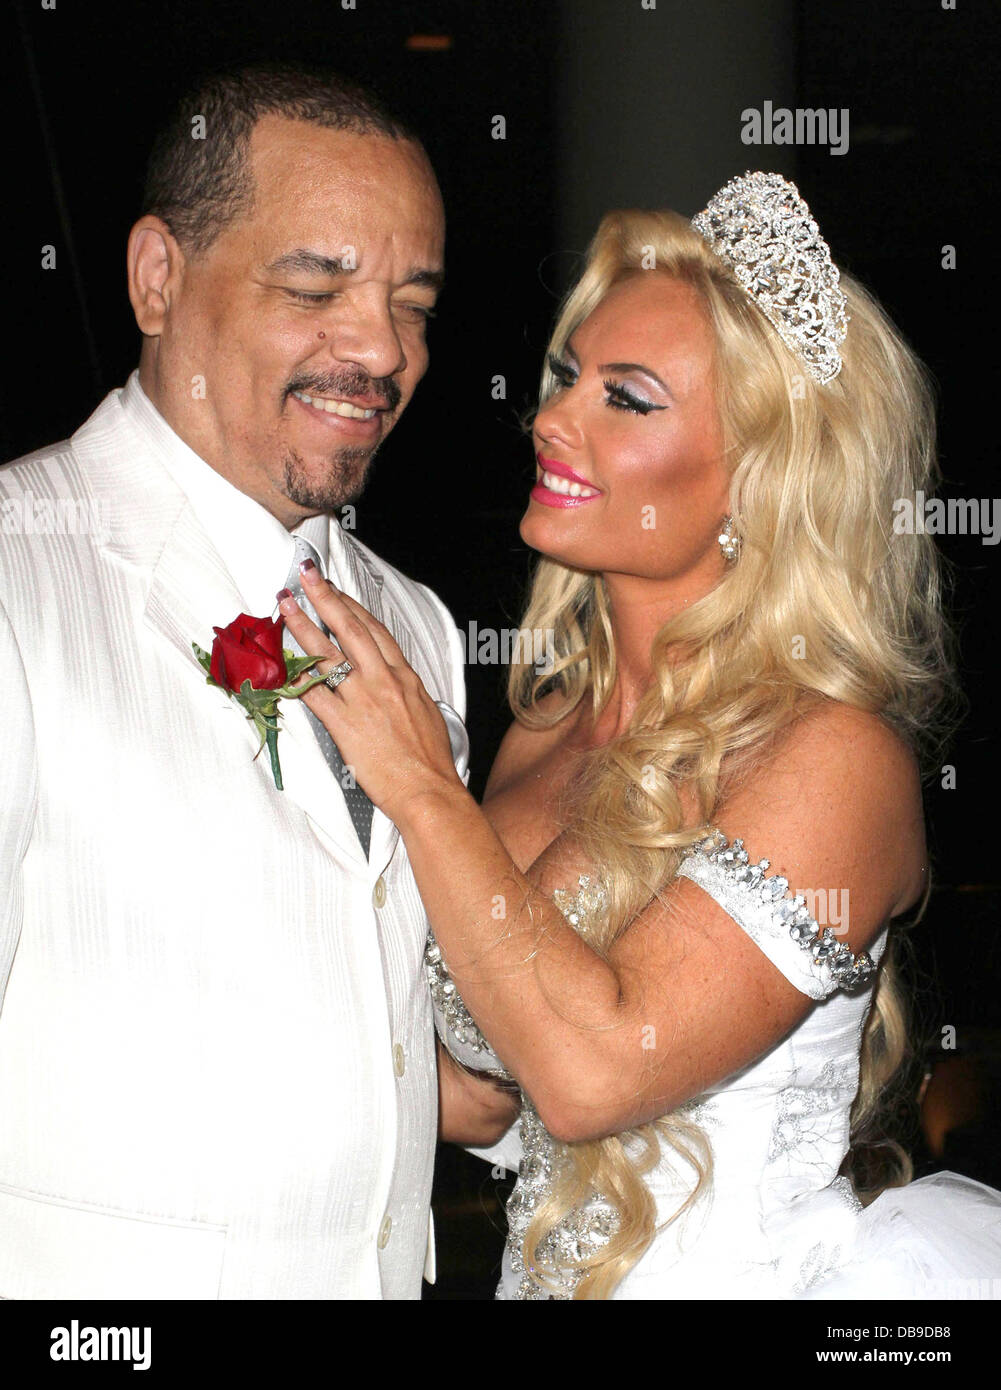 Ice T And Wife Coco Ice T And Coco 10 Year Anniversary Wedding Vows Stock Photo Royalty Free